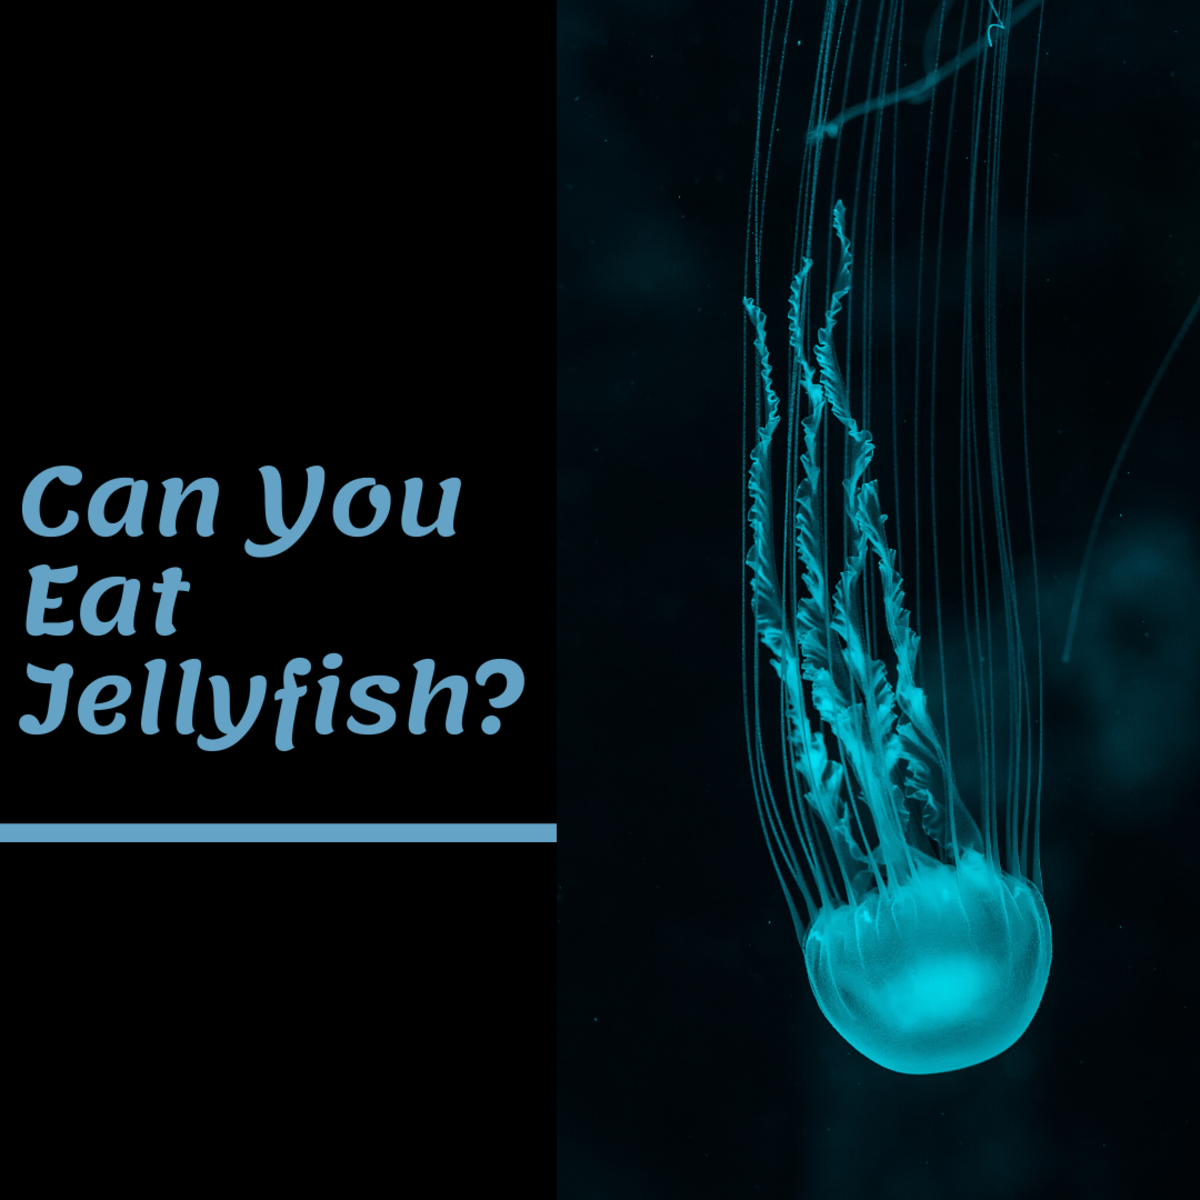 Jellyfish is surprisingly delicious. Read on to see several recipes that use jellyfish.